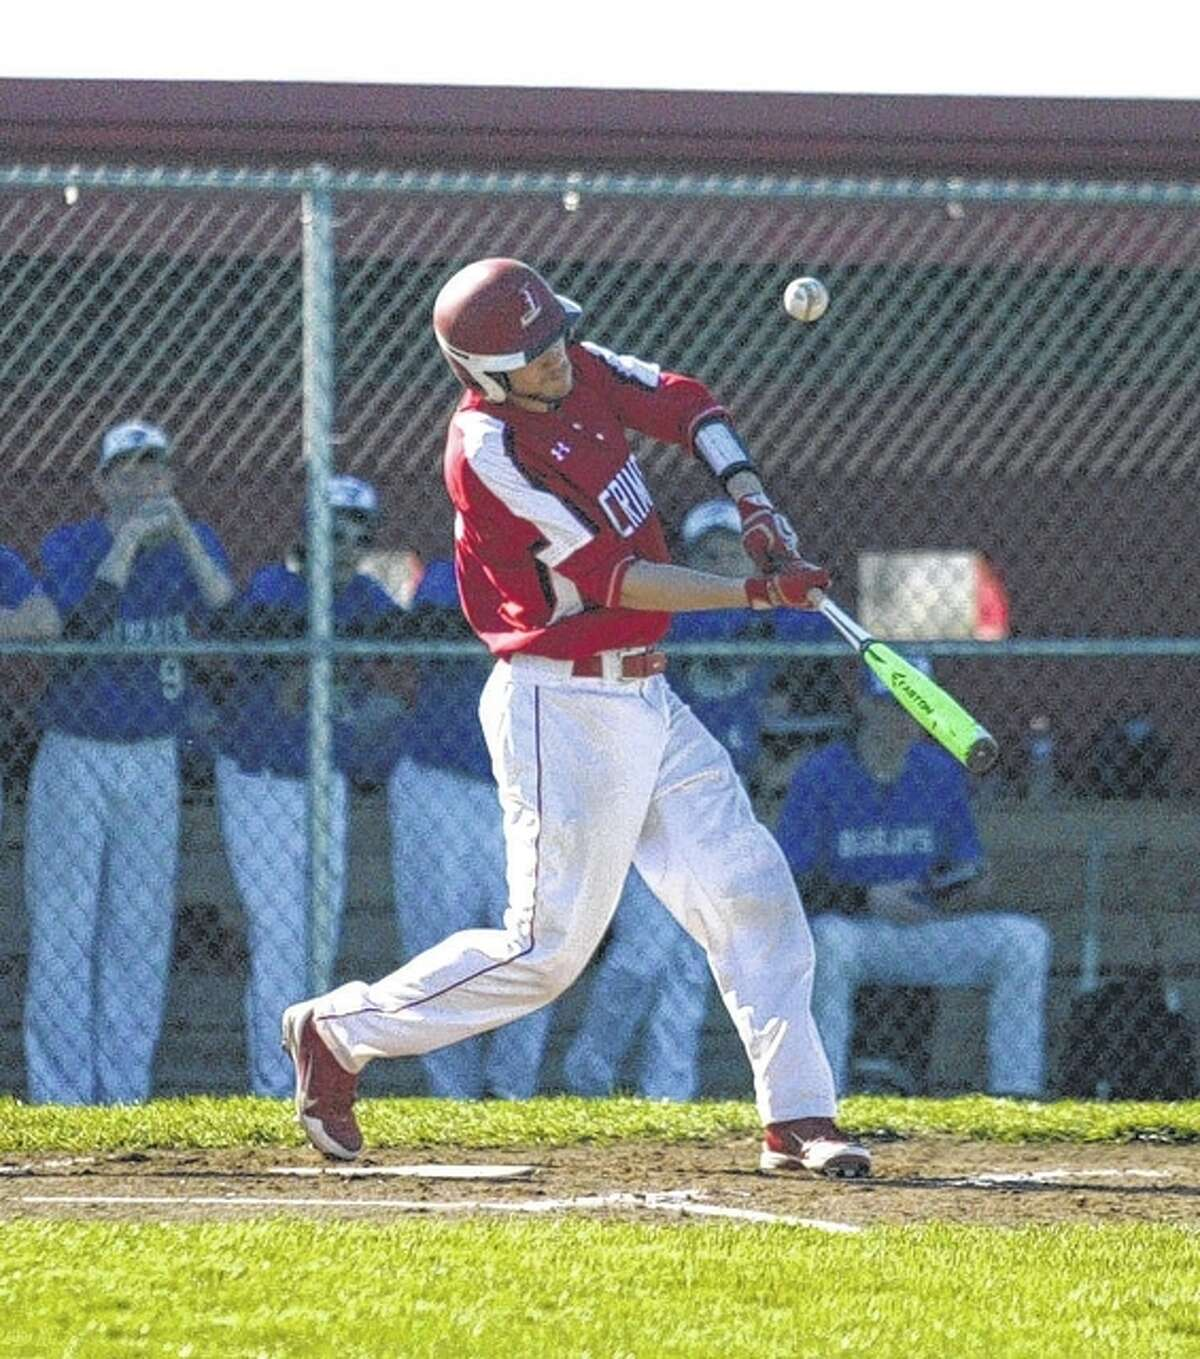 Jacksonville's Garrett Scaman takes a swing during a baseball game against PORTA/A-C Central Monday in Jacksonville.